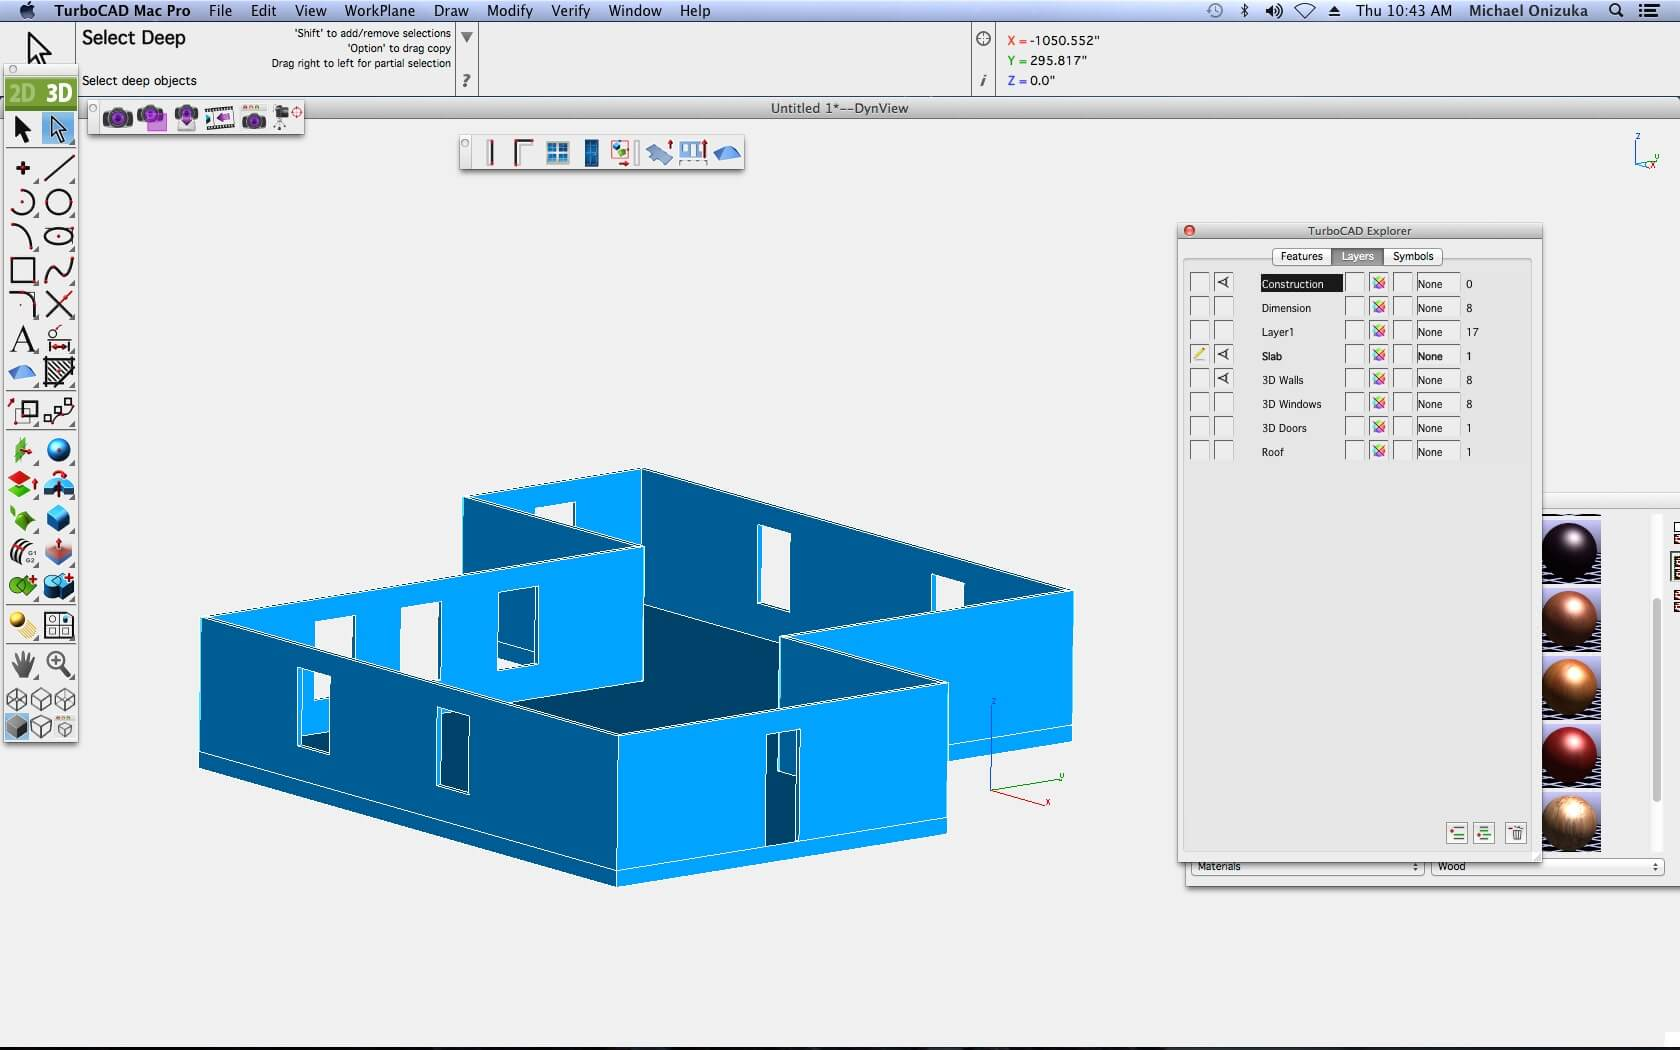 architectural design tools turbocad via imsi design